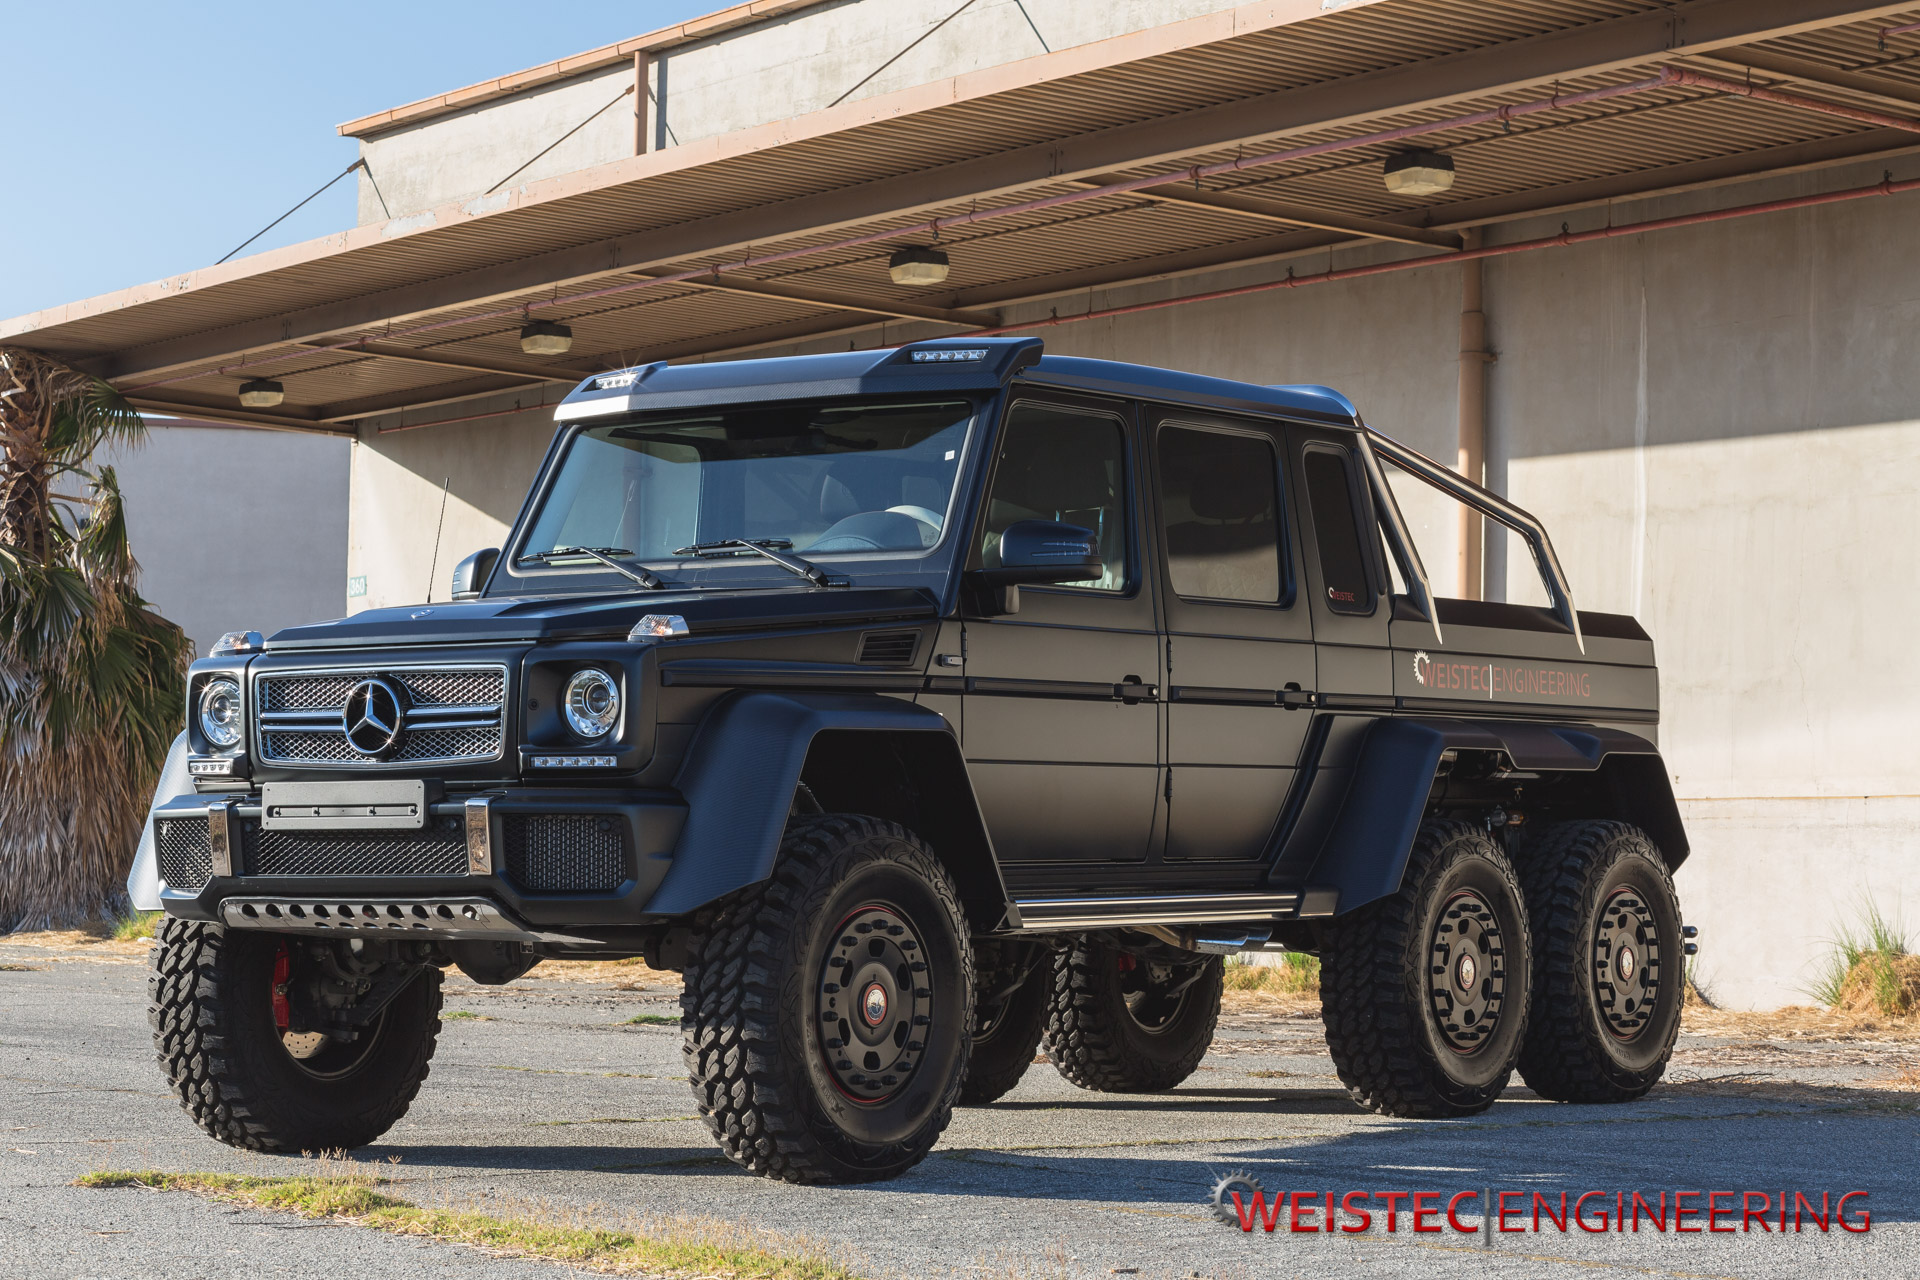 Weistec engineering mercedes benz g63 amg 6x6 in detail for Mercedes benz g63 6x6 amg